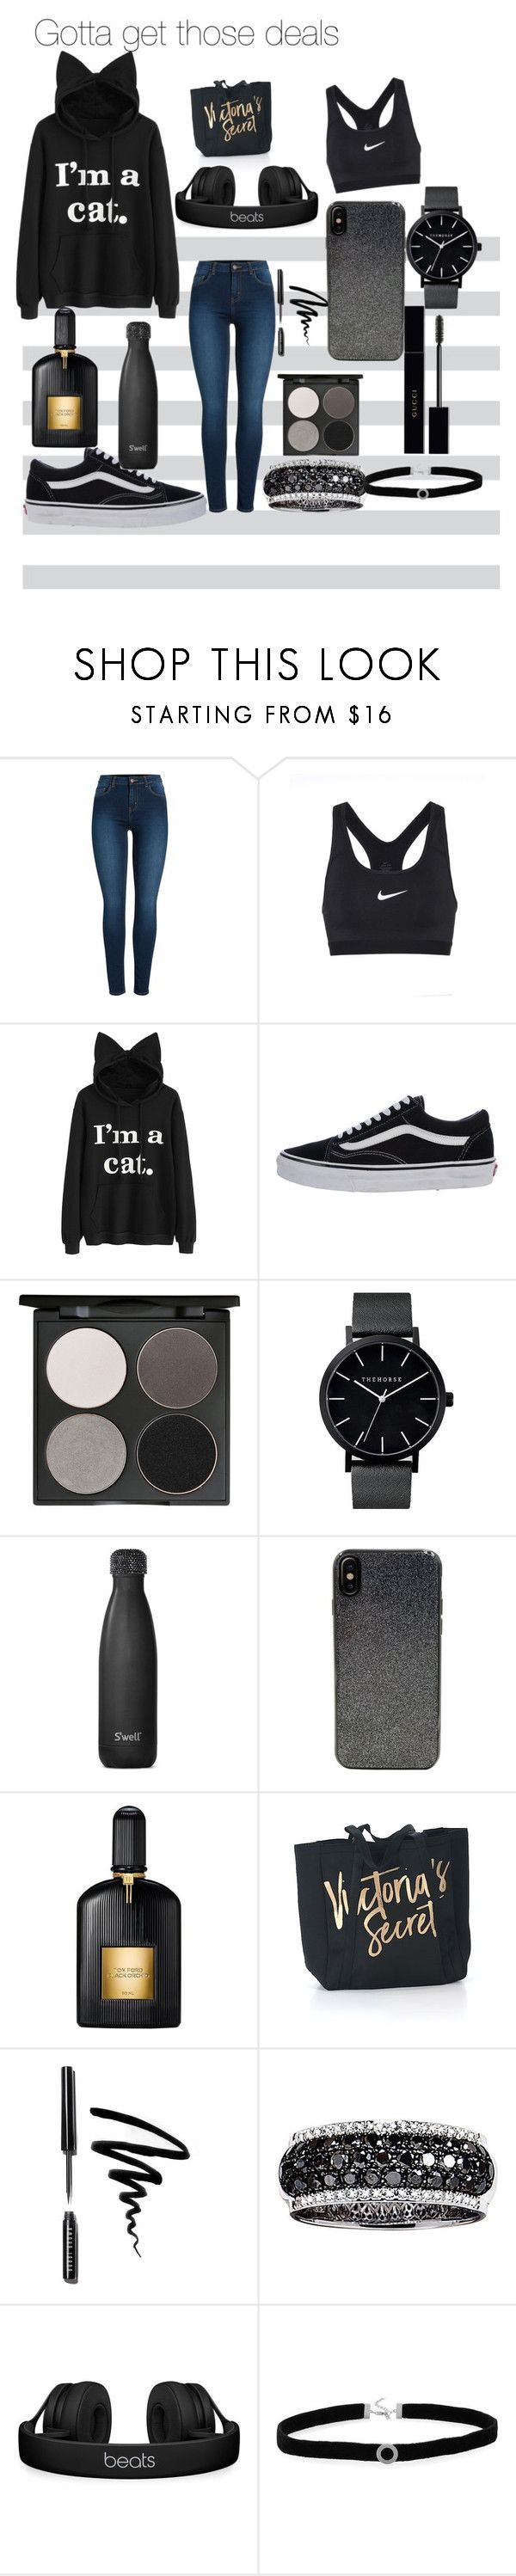 """black Friday rush💀"" by amyystyle ❤ liked on Polyvore featuring Pieces, NIKE, Vans, Gorgeous Cosmetics, S'well, Candywirez, Tom Ford, Victoria's Secret, Bobbi Brown Cosmetics and Effy Jewelry"